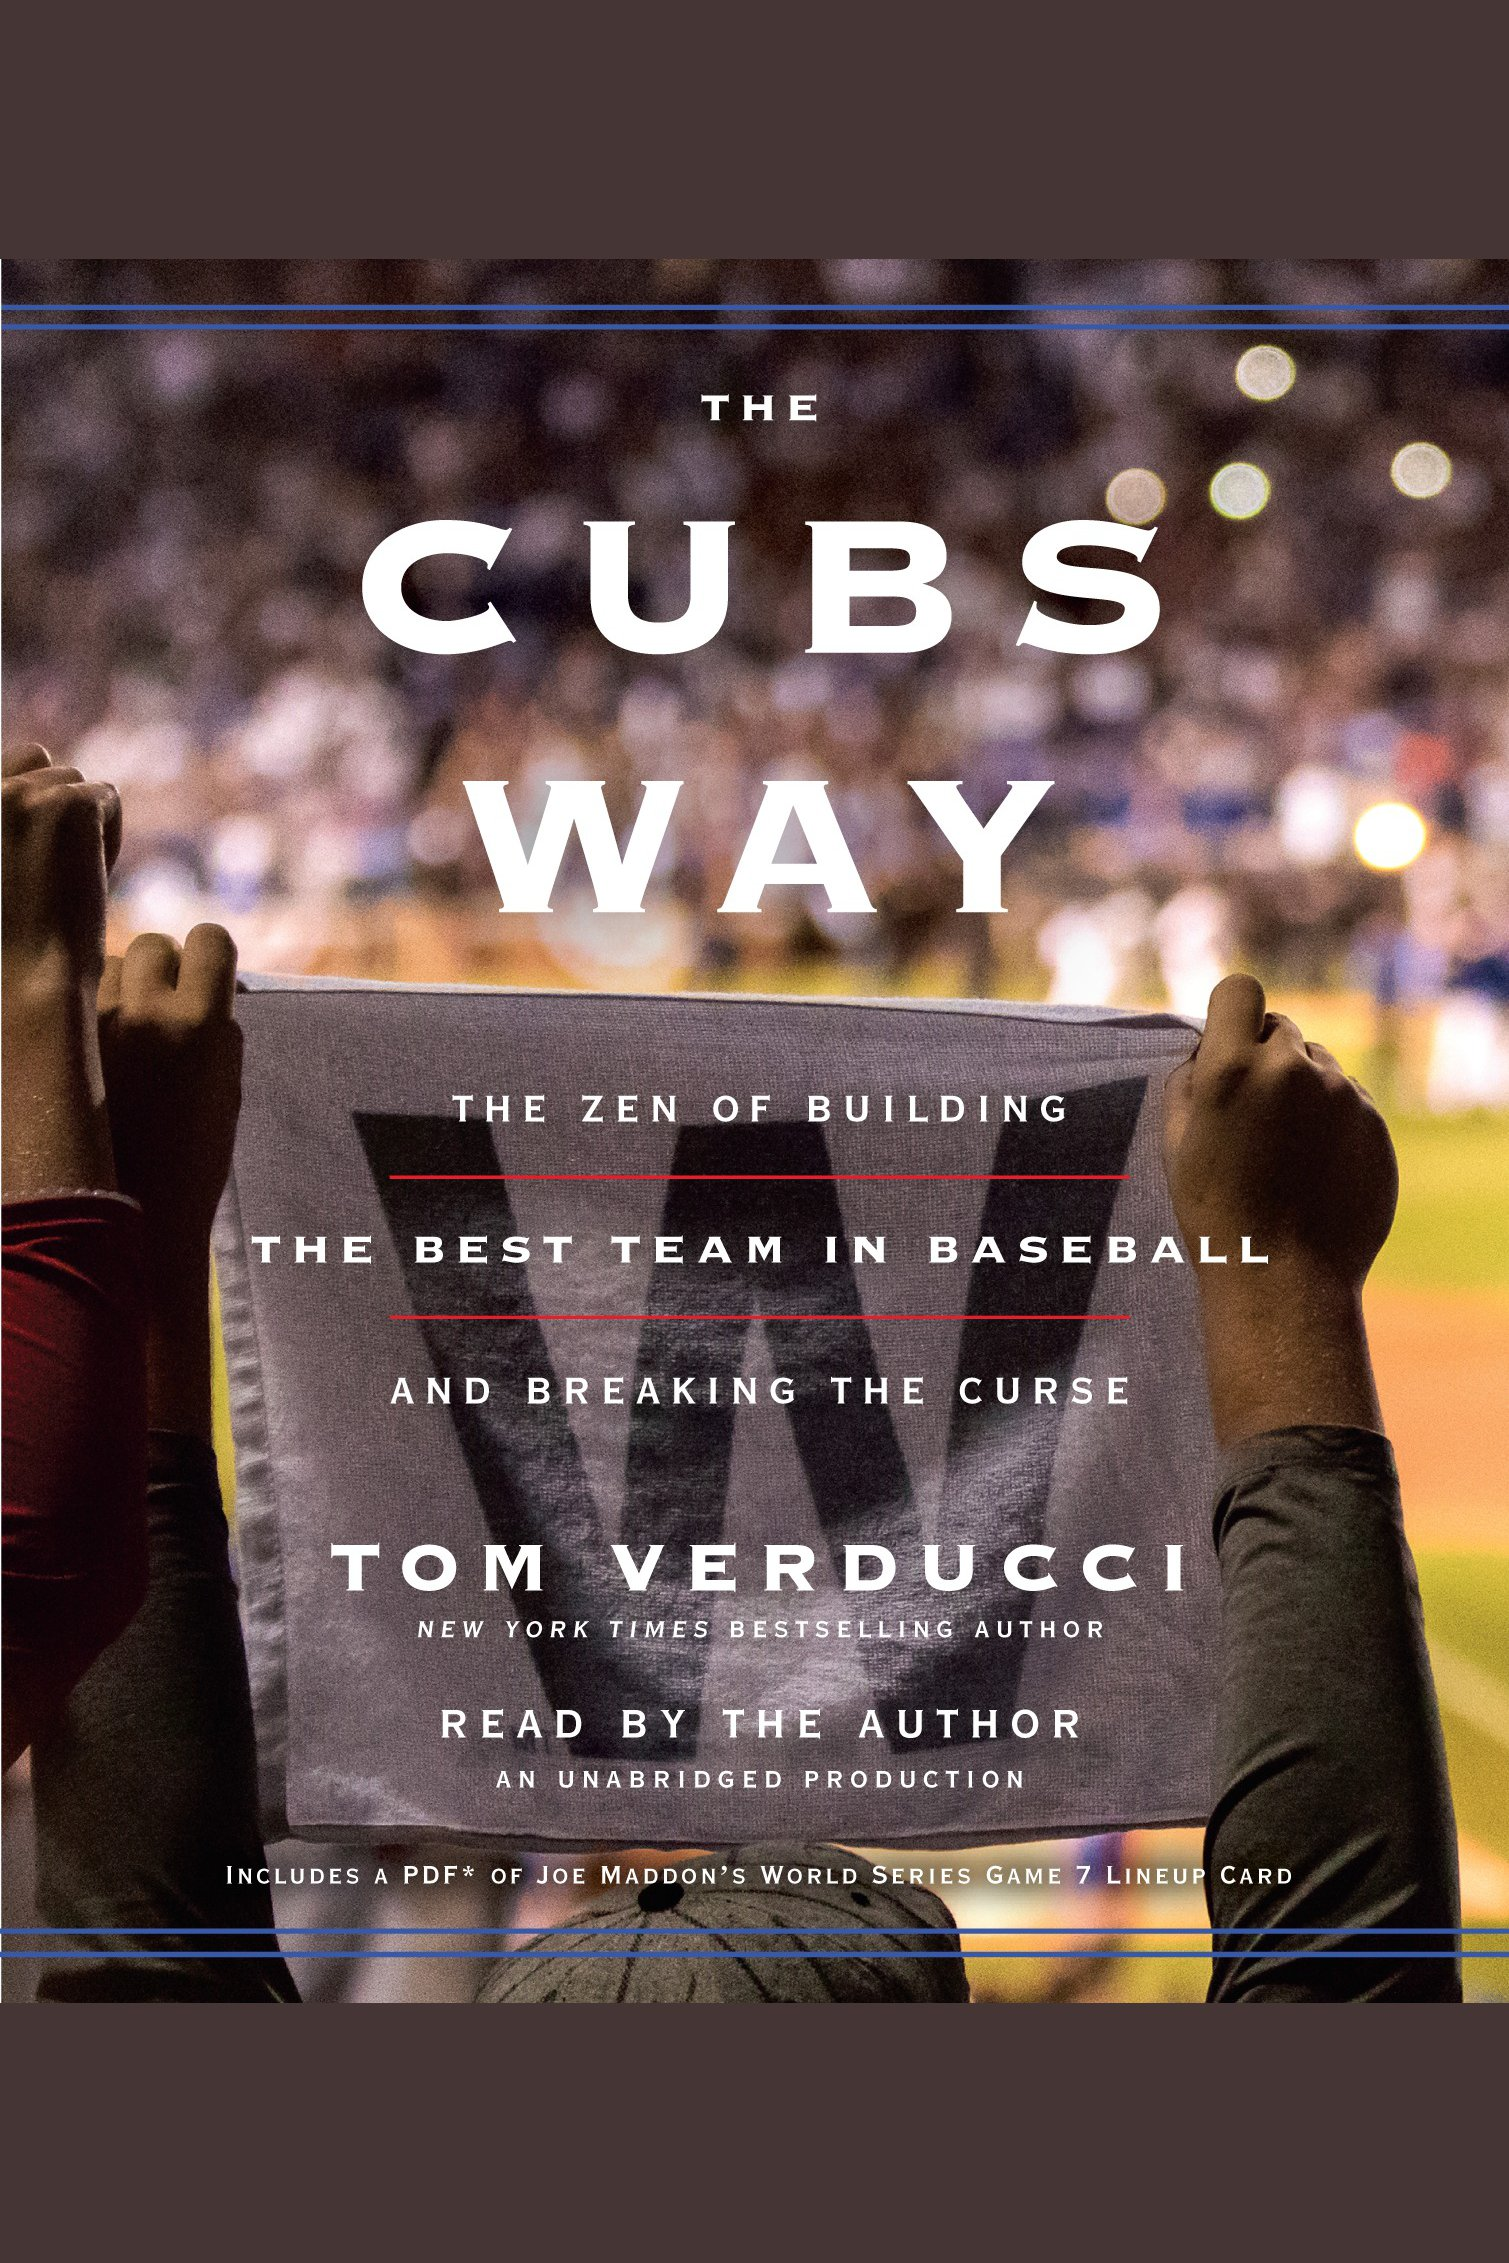 The Cubs Way [AUDIO EBOOK] The Zen of Building the Best Team in Baseball and Breaking the Curse